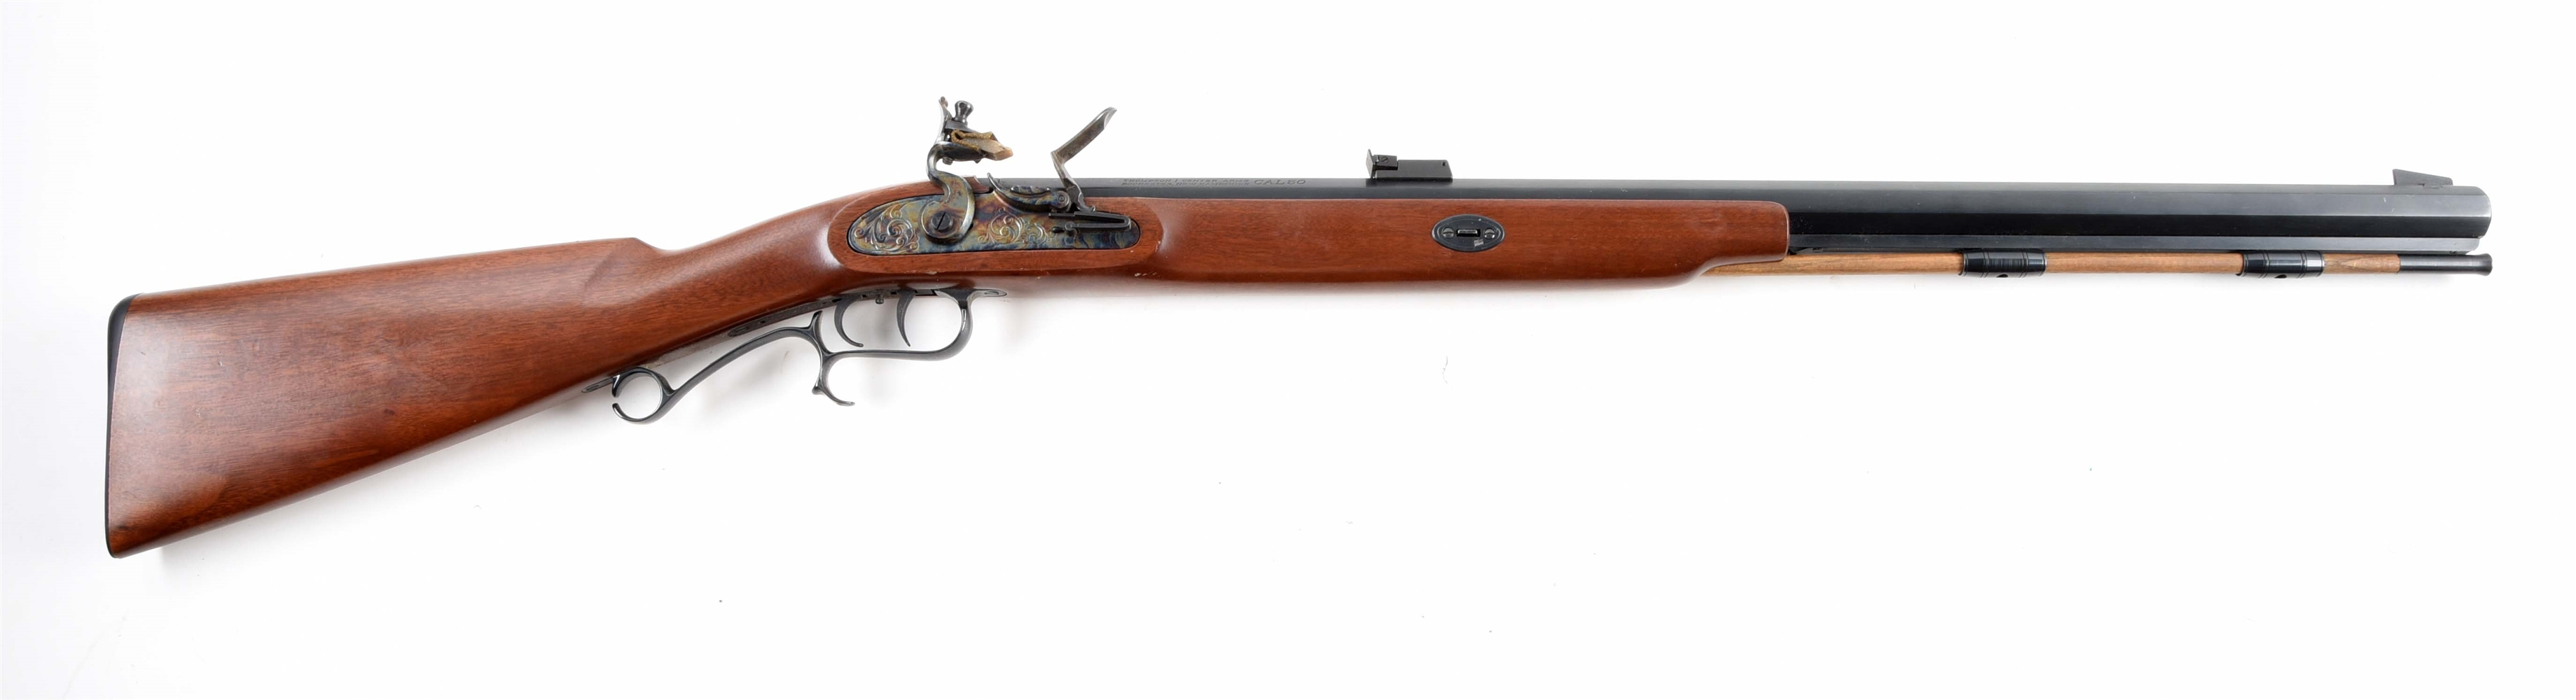 (A) THOMPSON CENTER FLINTLOCK RIFLE.